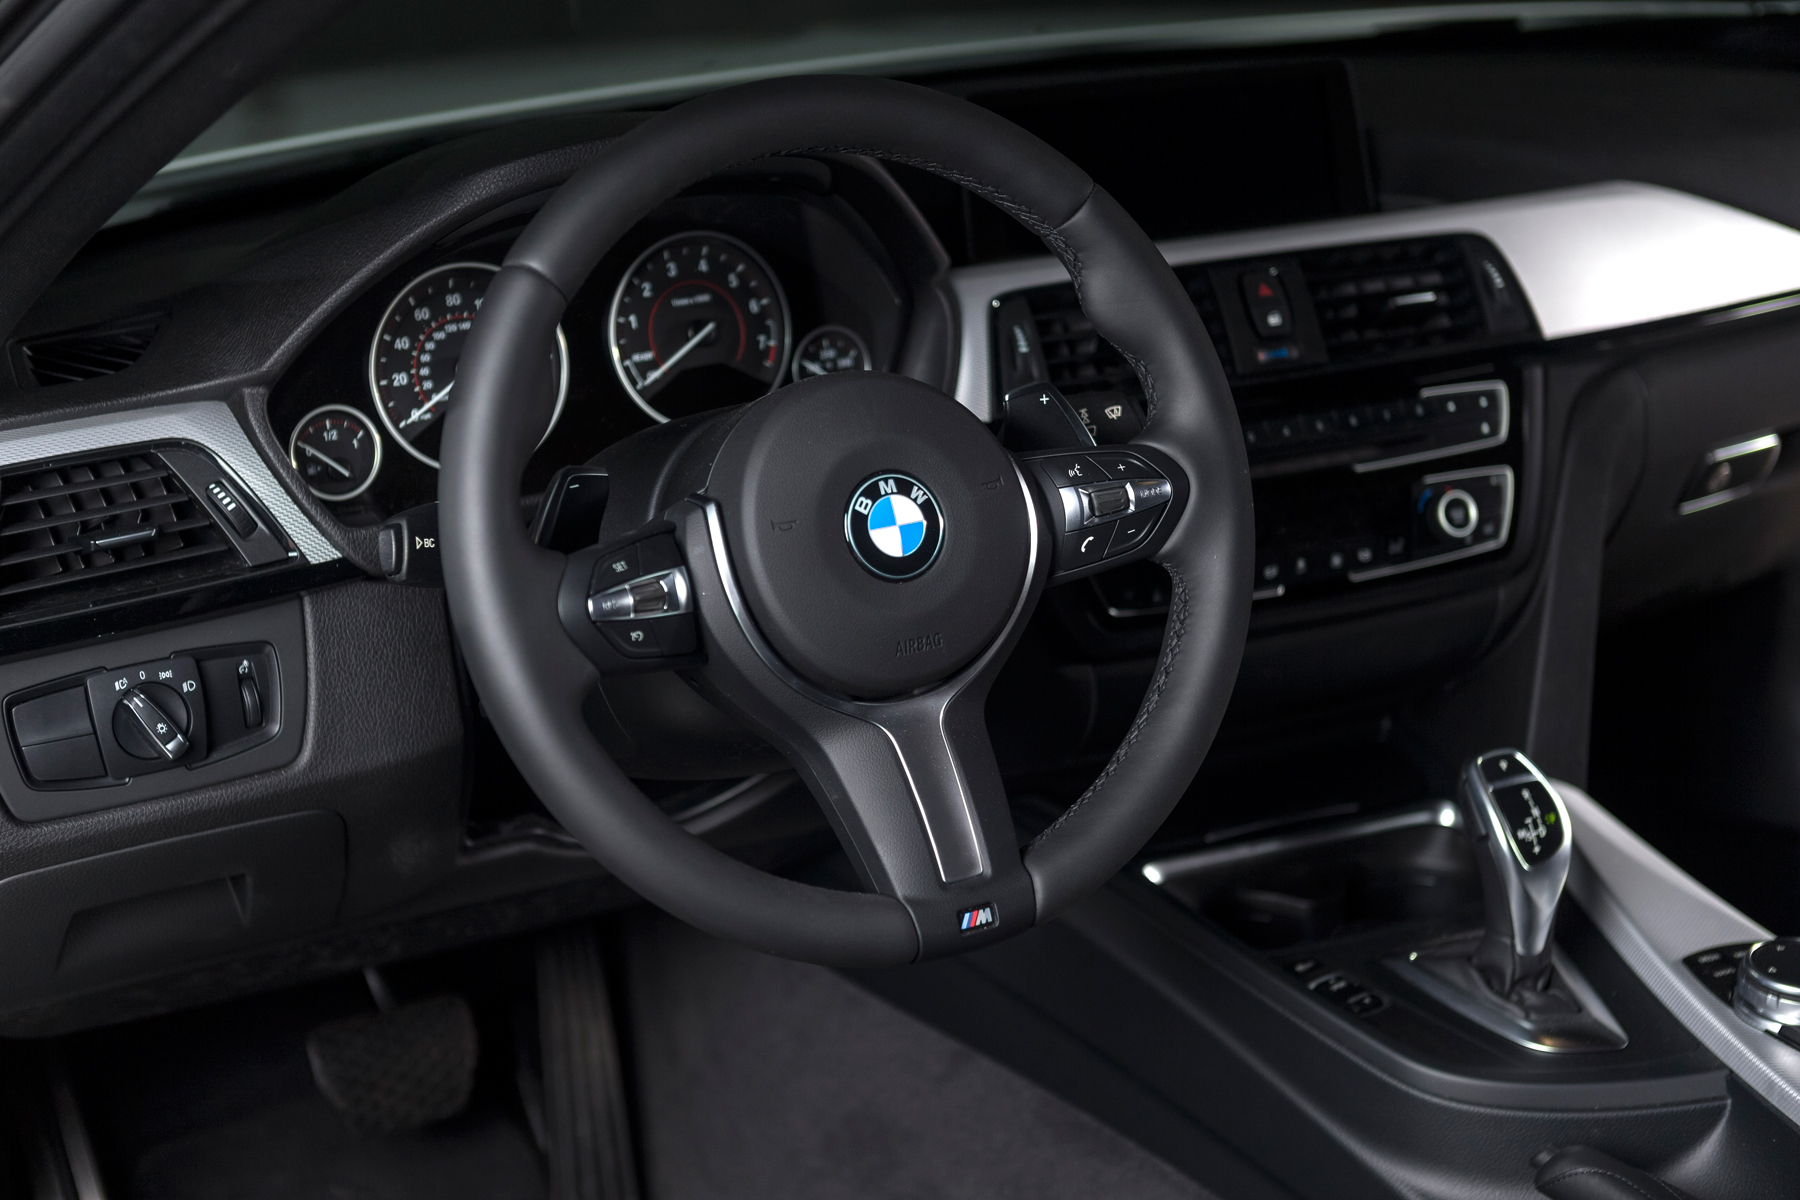 Bmw 435i Zhp Coupe In 16 01 2016 BMW ZHP Interior